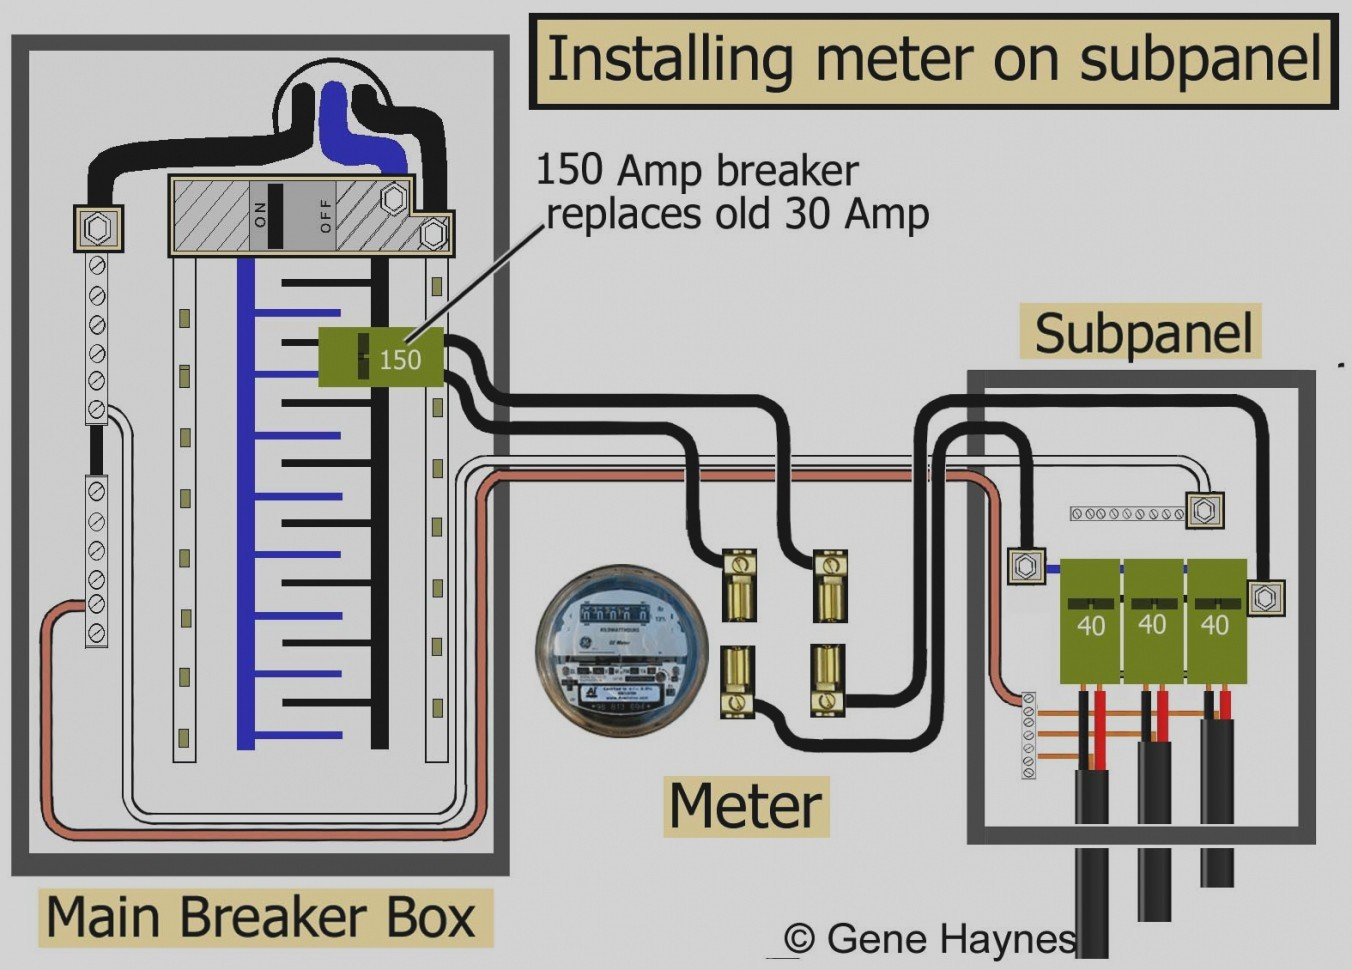 50 Amp Sub Panel Wiring Diagram How to Wire A Subpanel Diagram Lenito for Wellread